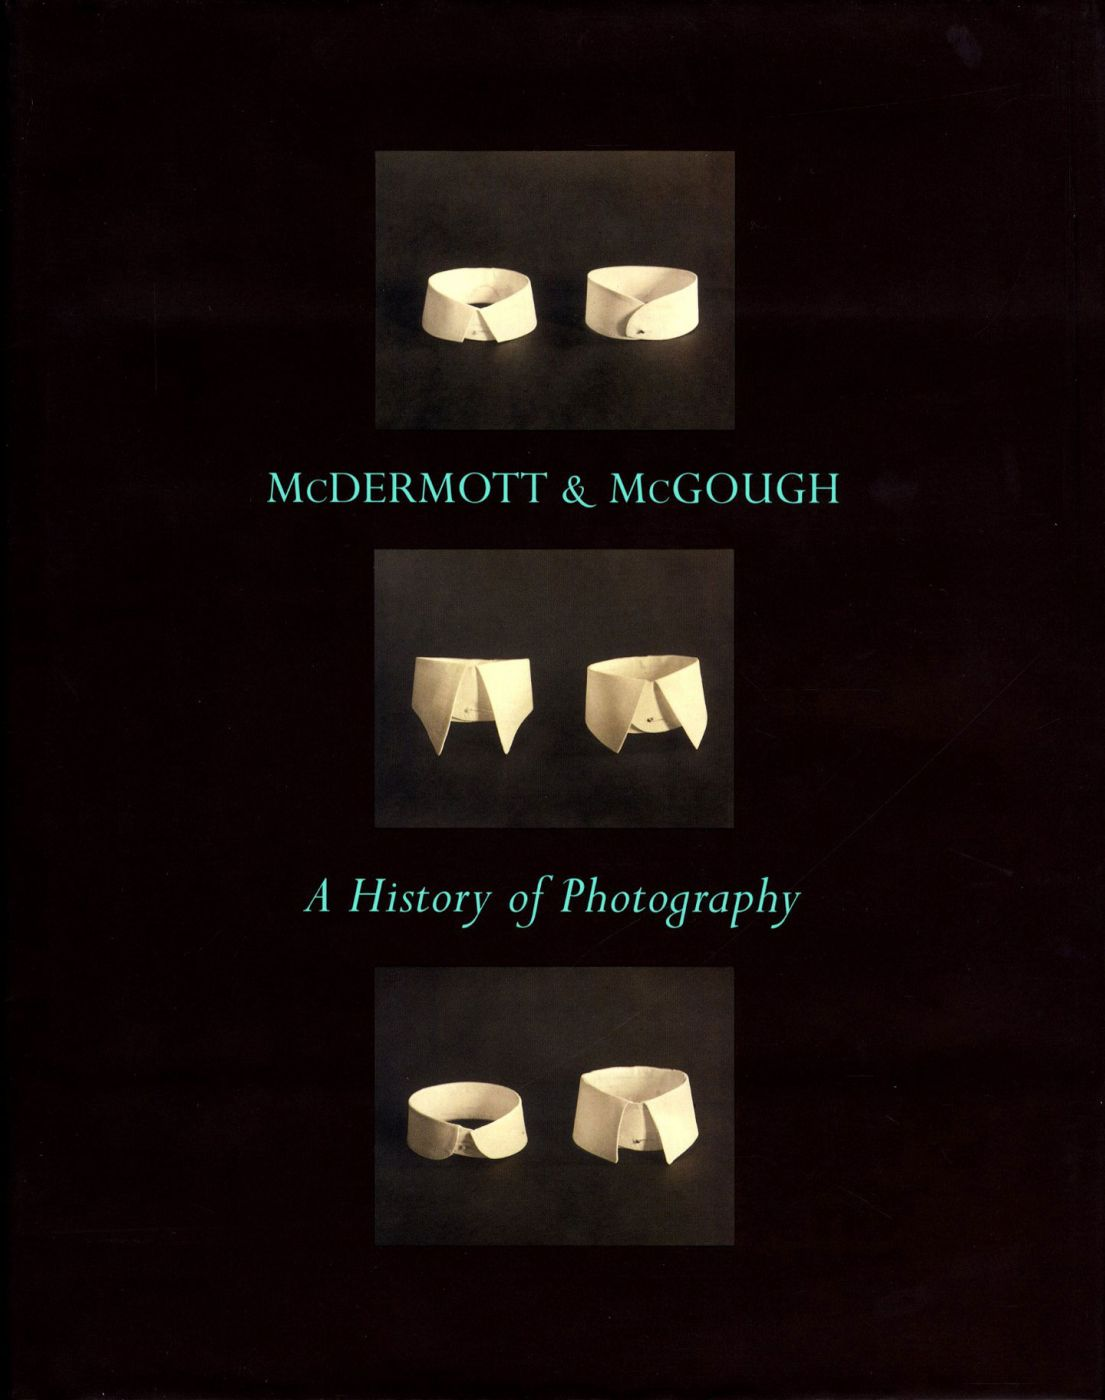 McDermott & McGough: A History of Photography